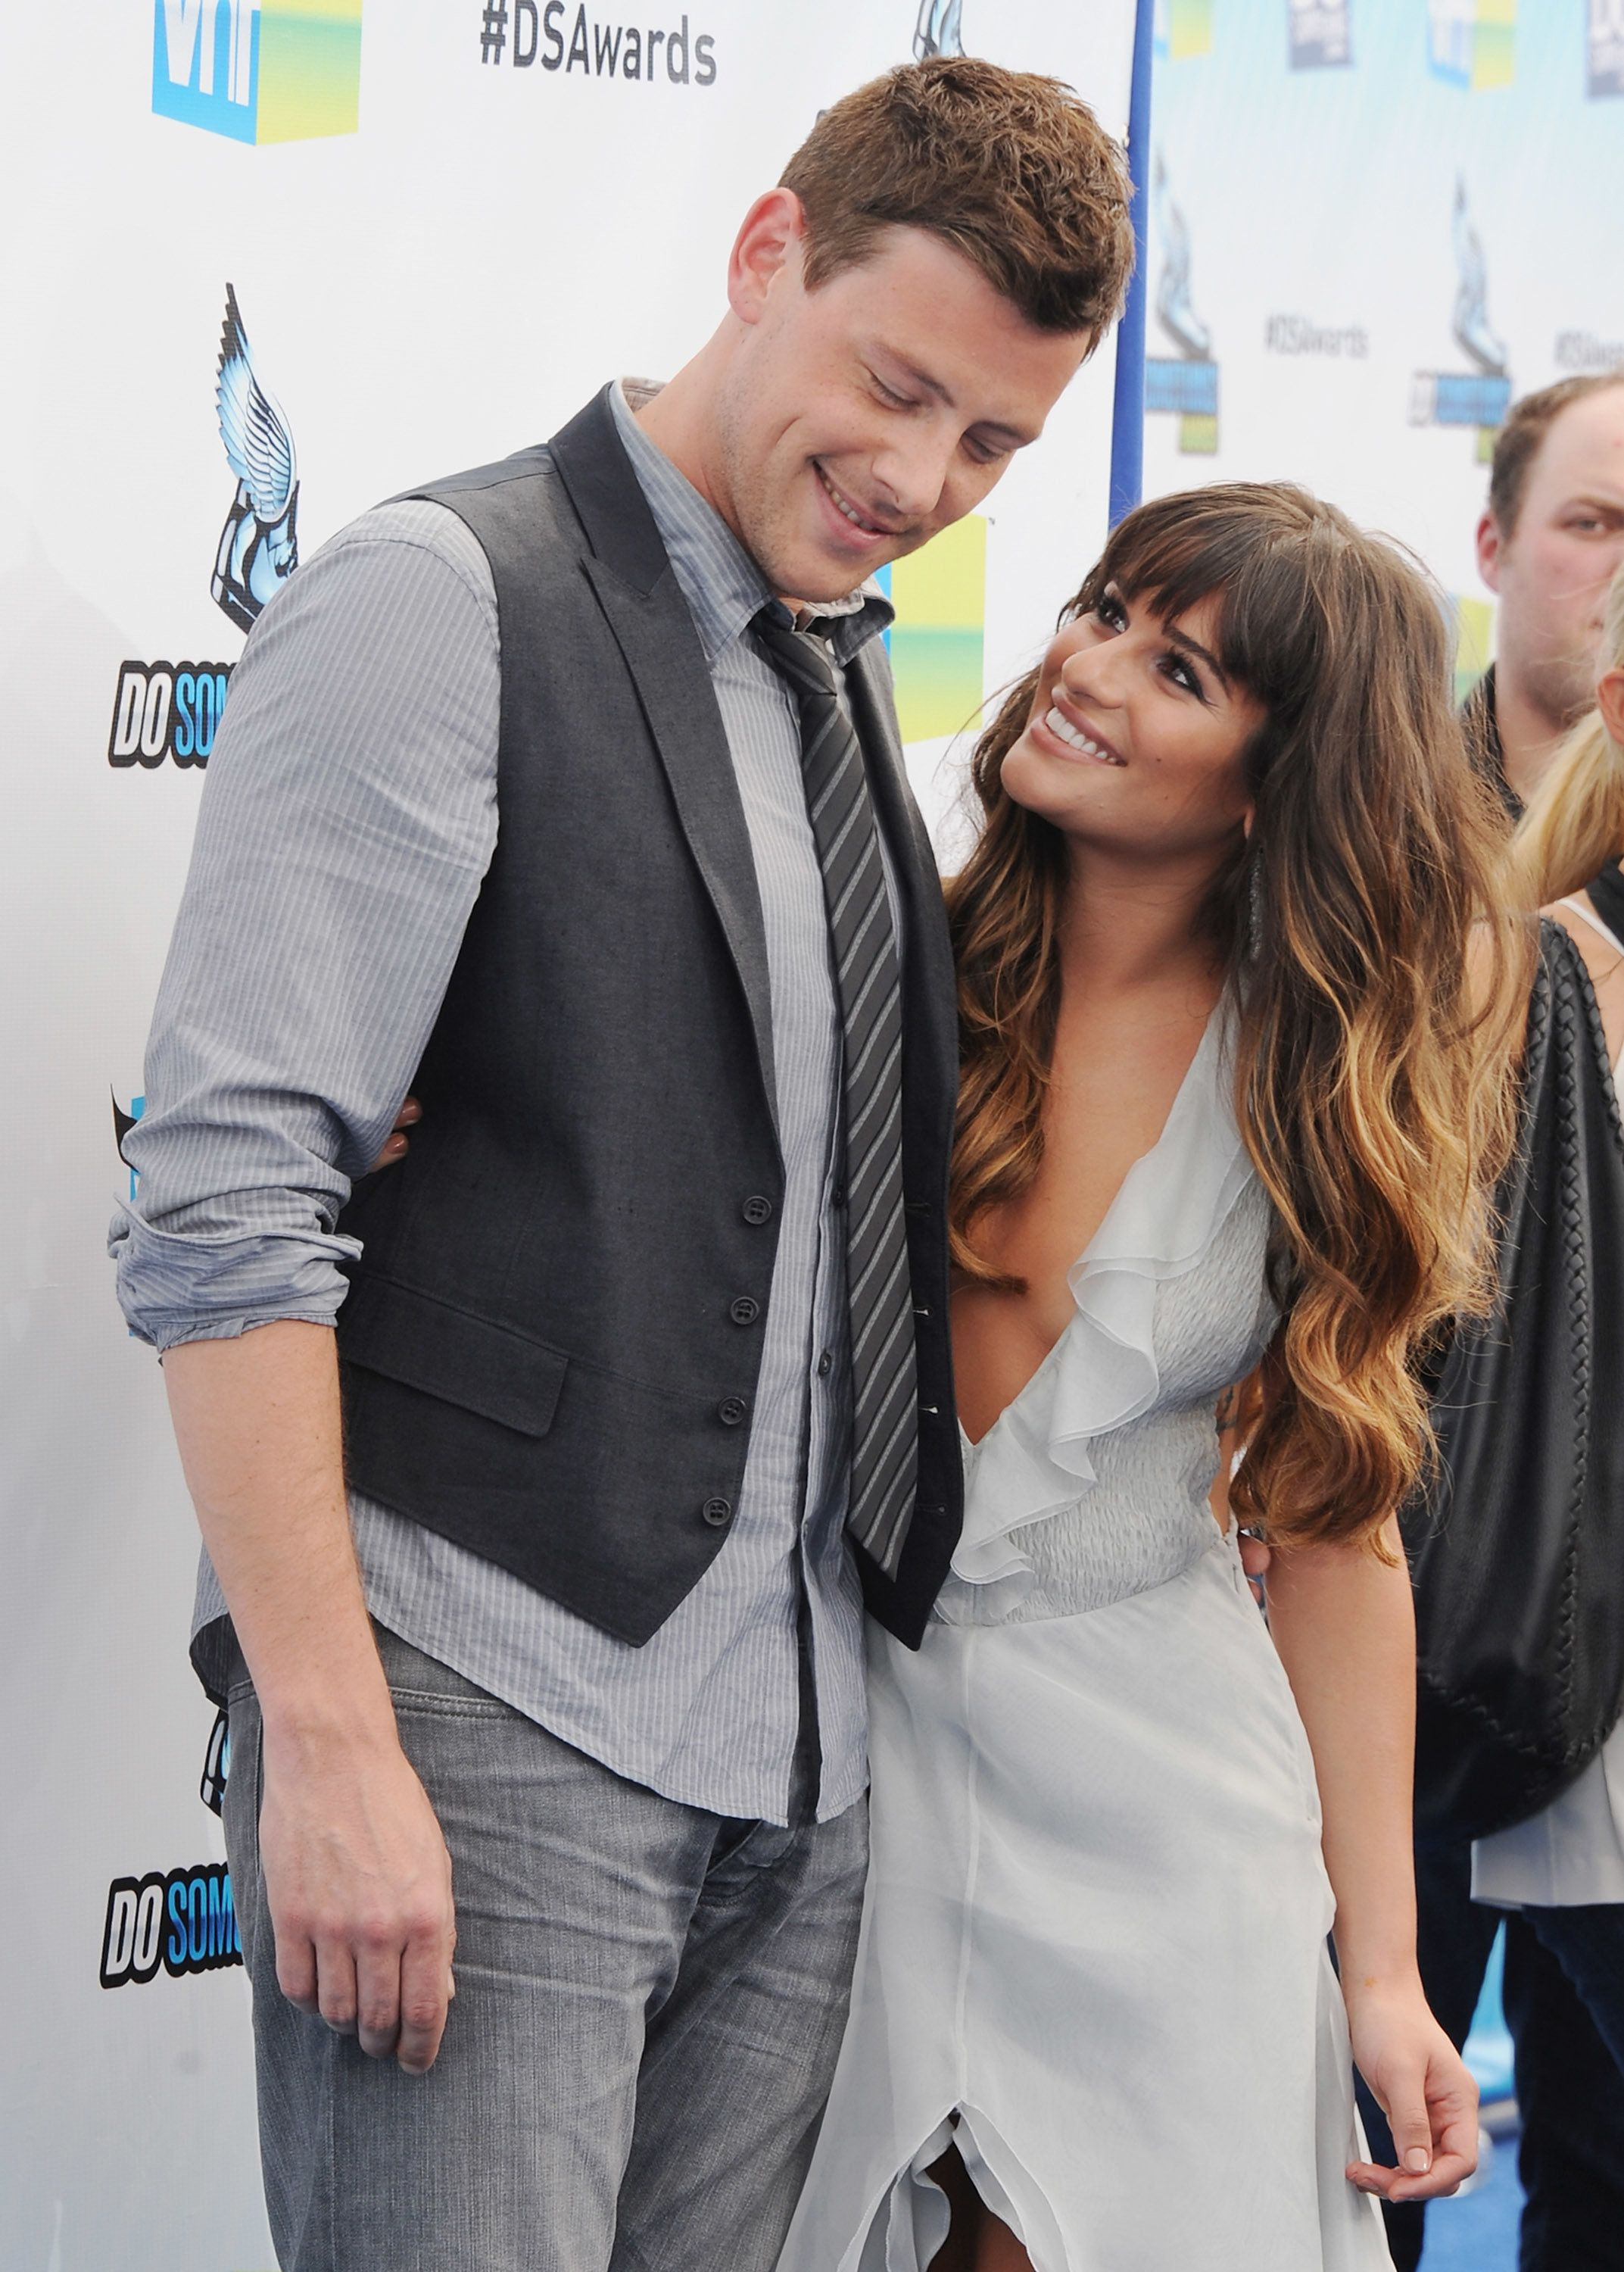 SANTA MONICA, CA - AUGUST 19:  Actor Cory Monteith and actress Lea Michele arrive at the DoSomething.org And VH1's 2012 Do Something Awards at the Barker Hangar on August 19, 2012 in Santa Monica, California.  (Photo by Jon Kopaloff/FilmMagic)